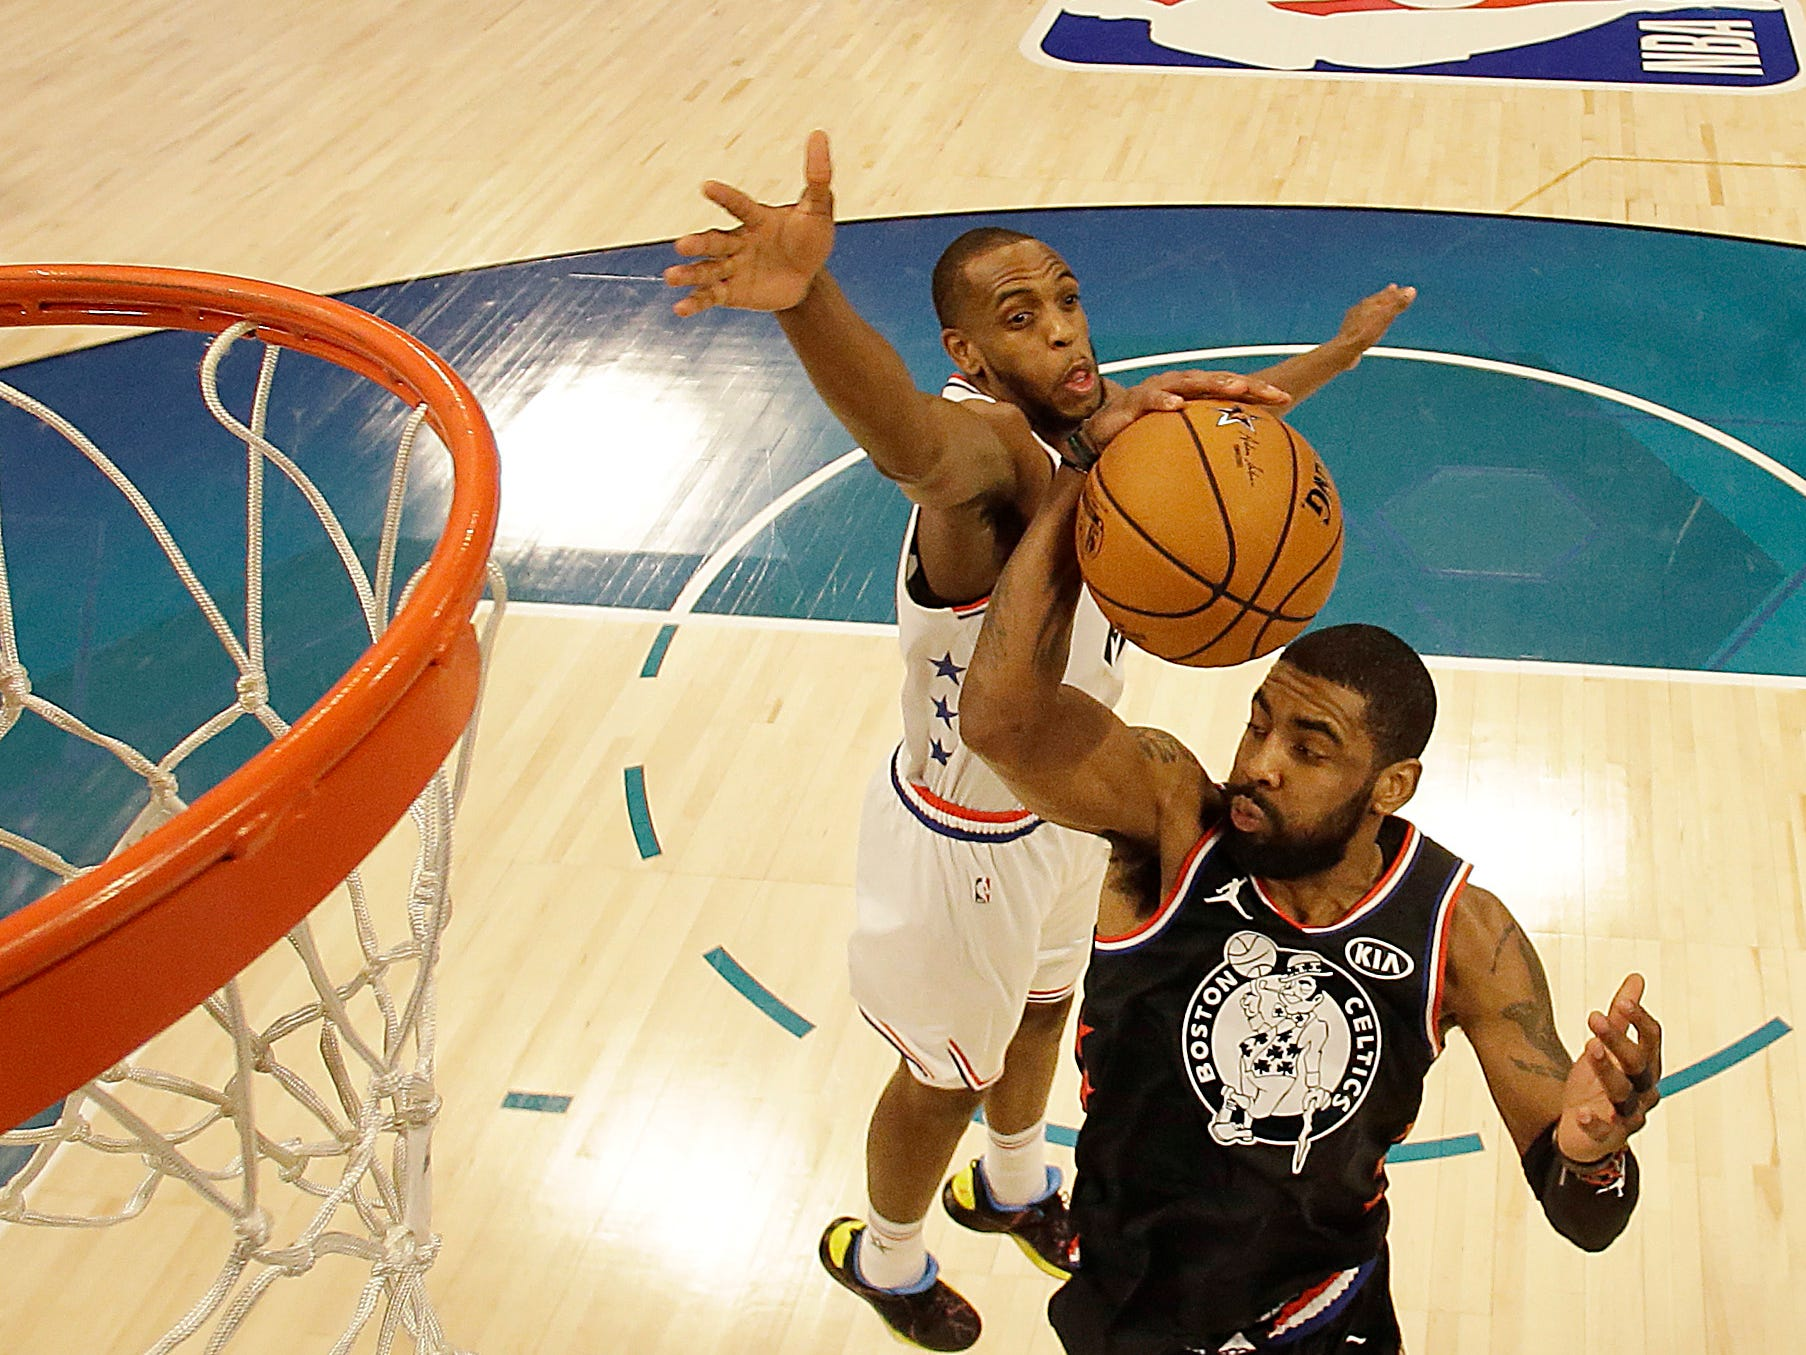 Bucks guard Khris Middleton, who scored 20 points, tries to block a layup by Kyrie Irving in the NBA All-Star Game.